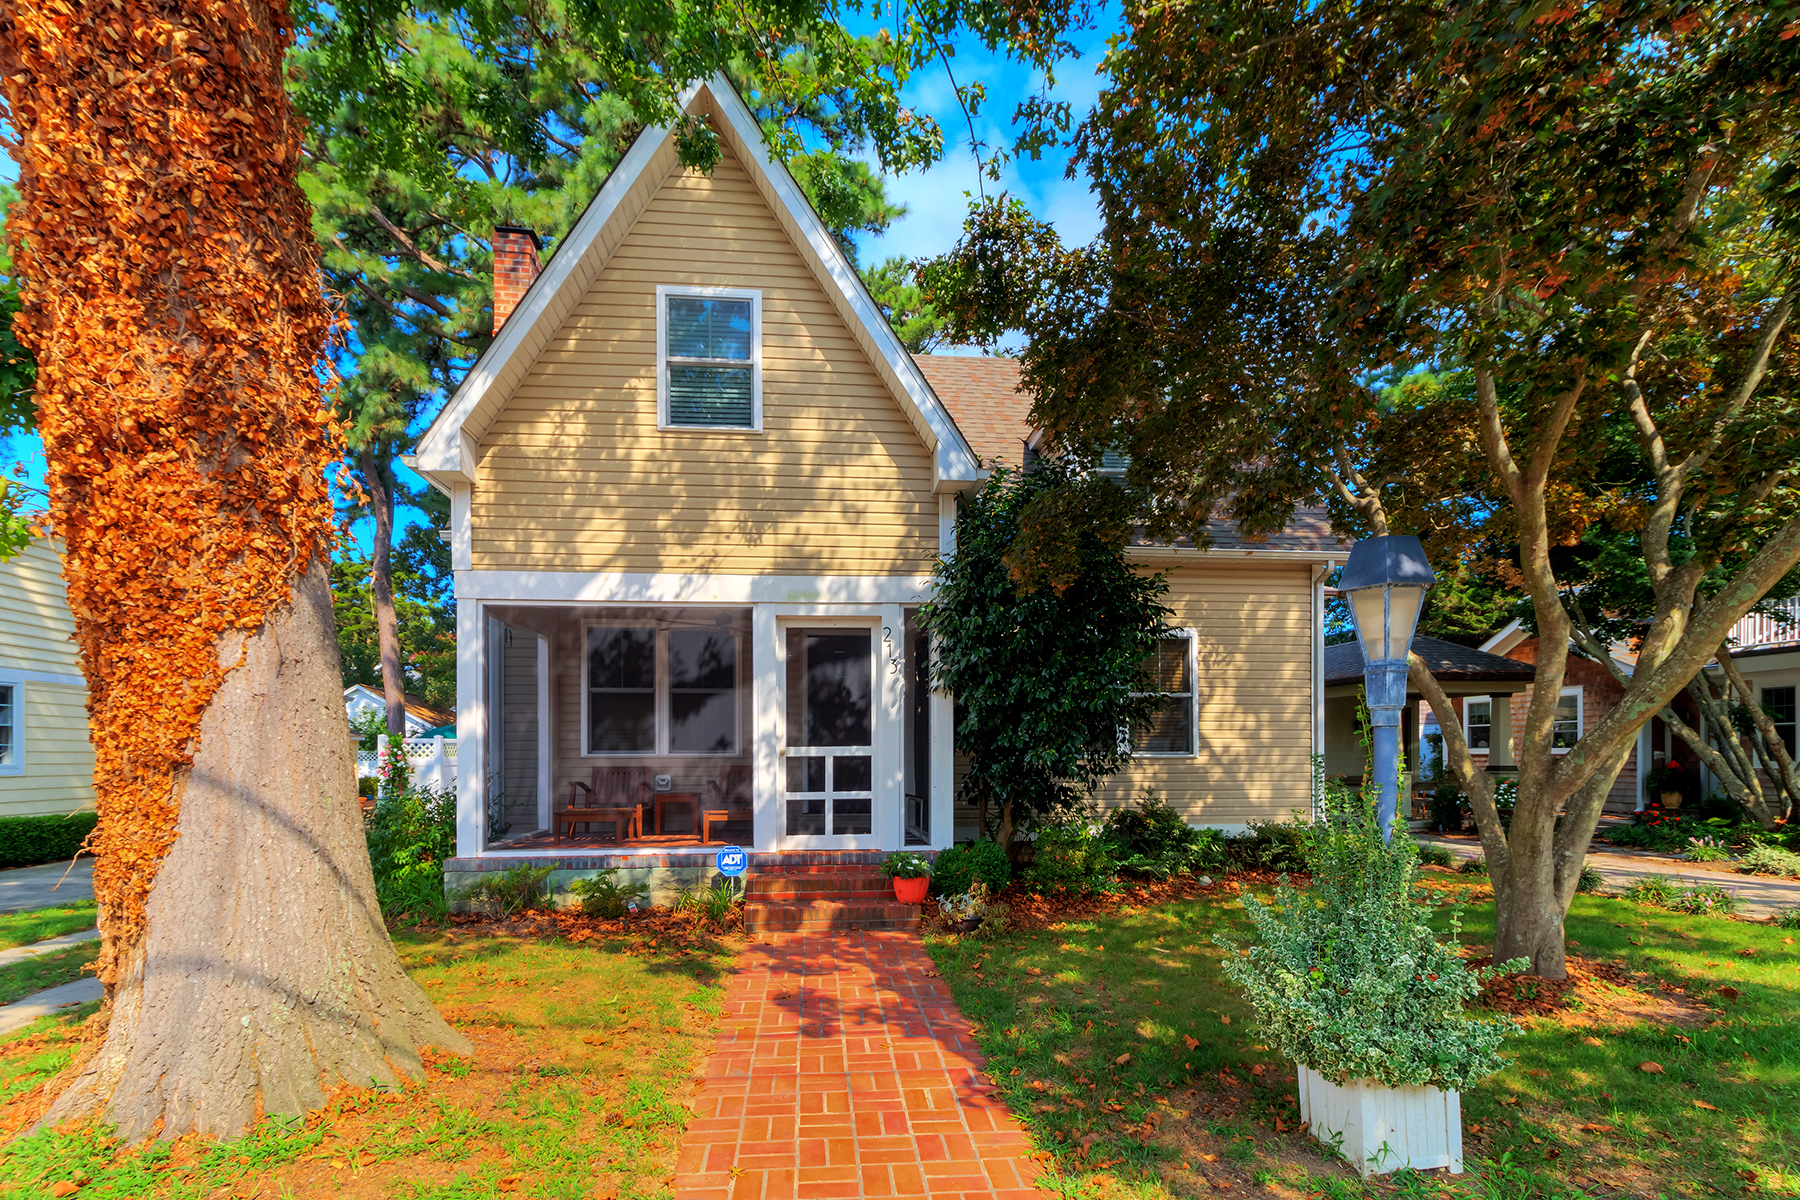 Single Family Home for Sale at 213 Hickman St , Rehoboth Beach, DE 19971 213 Hickman St Rehoboth Beach, Delaware 19971 United States